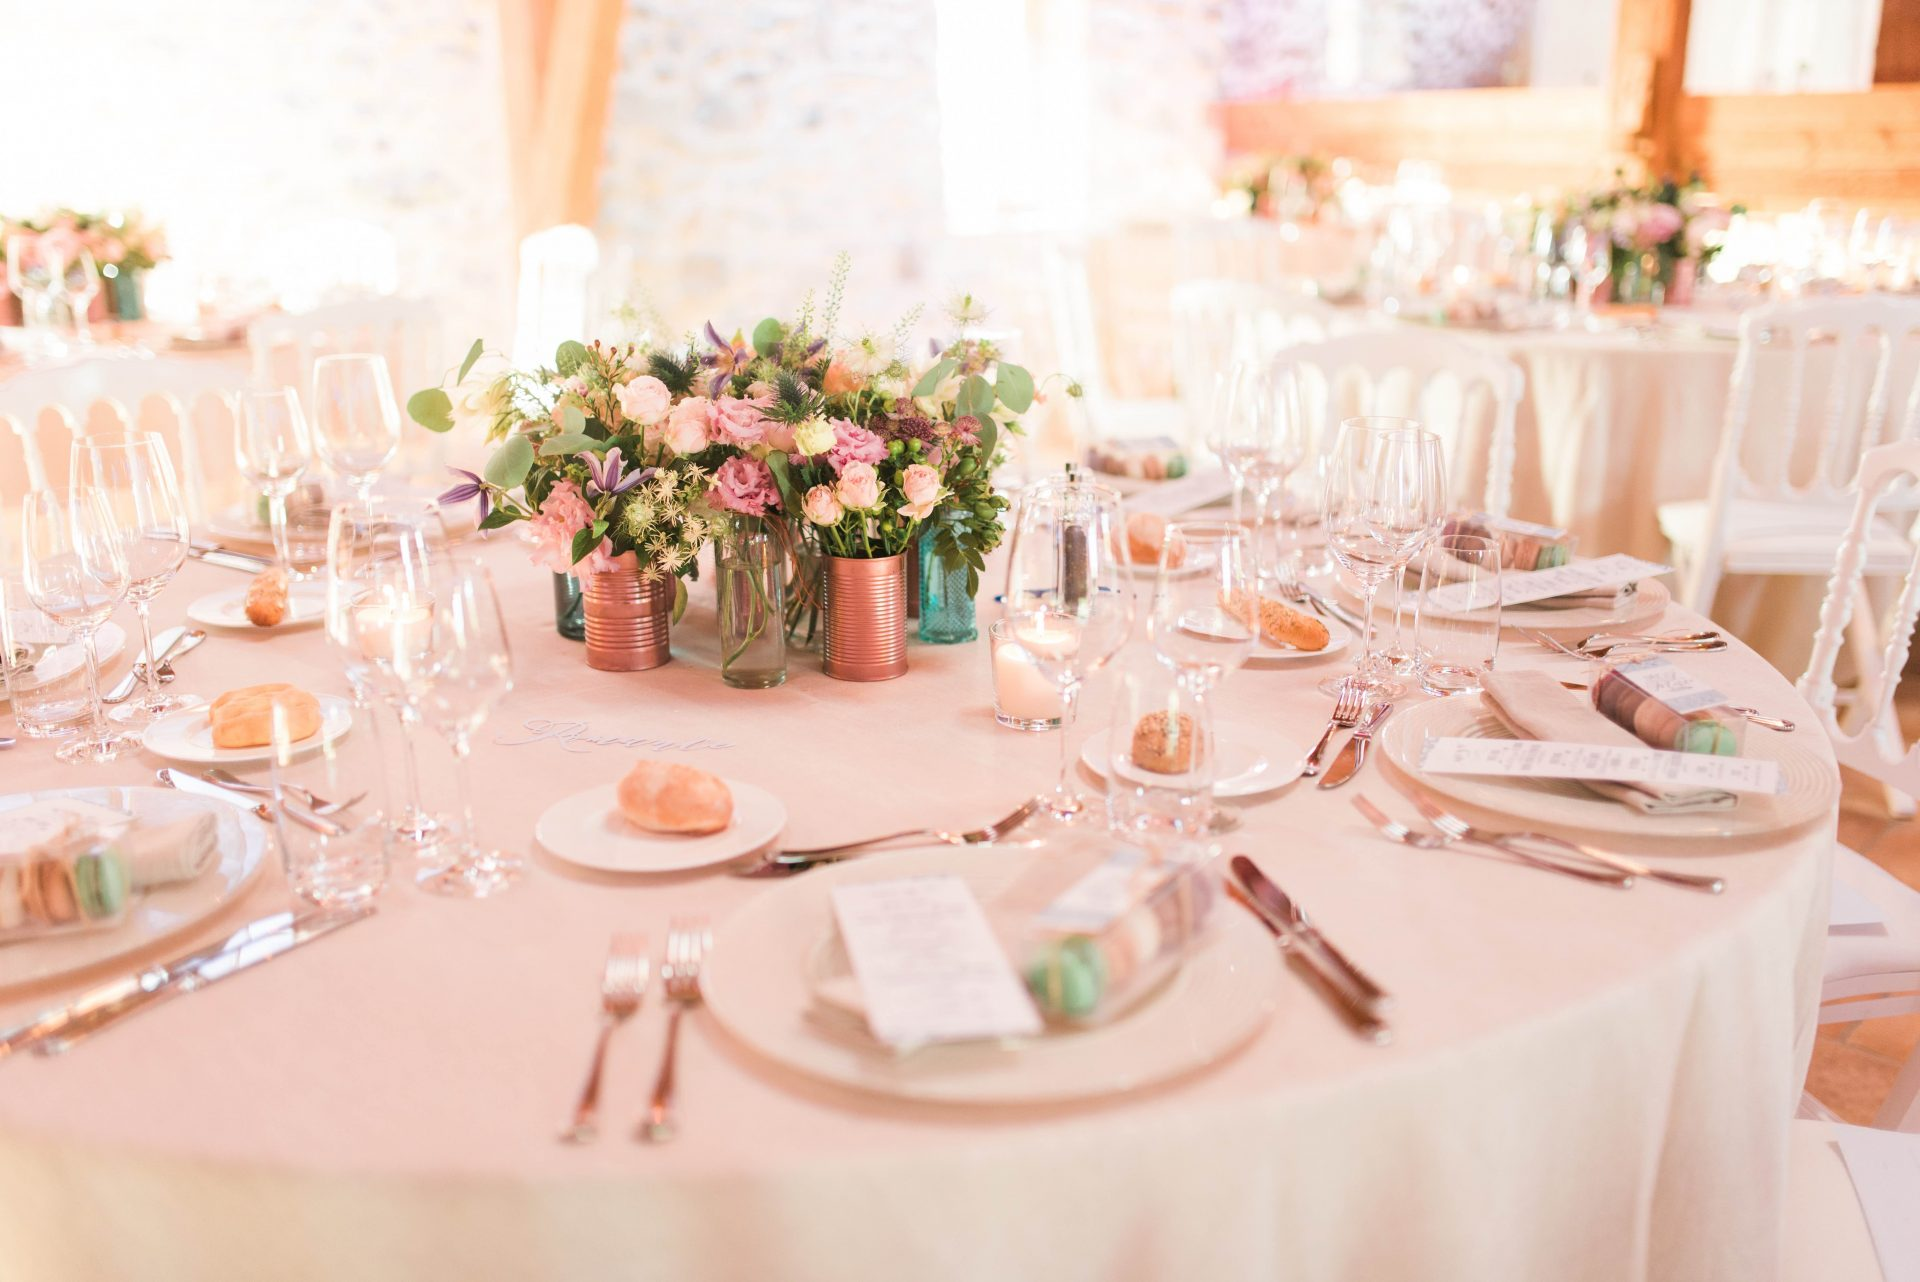 melisande laurent 646 2 - An eco-responsible wedding? What are the best practices?